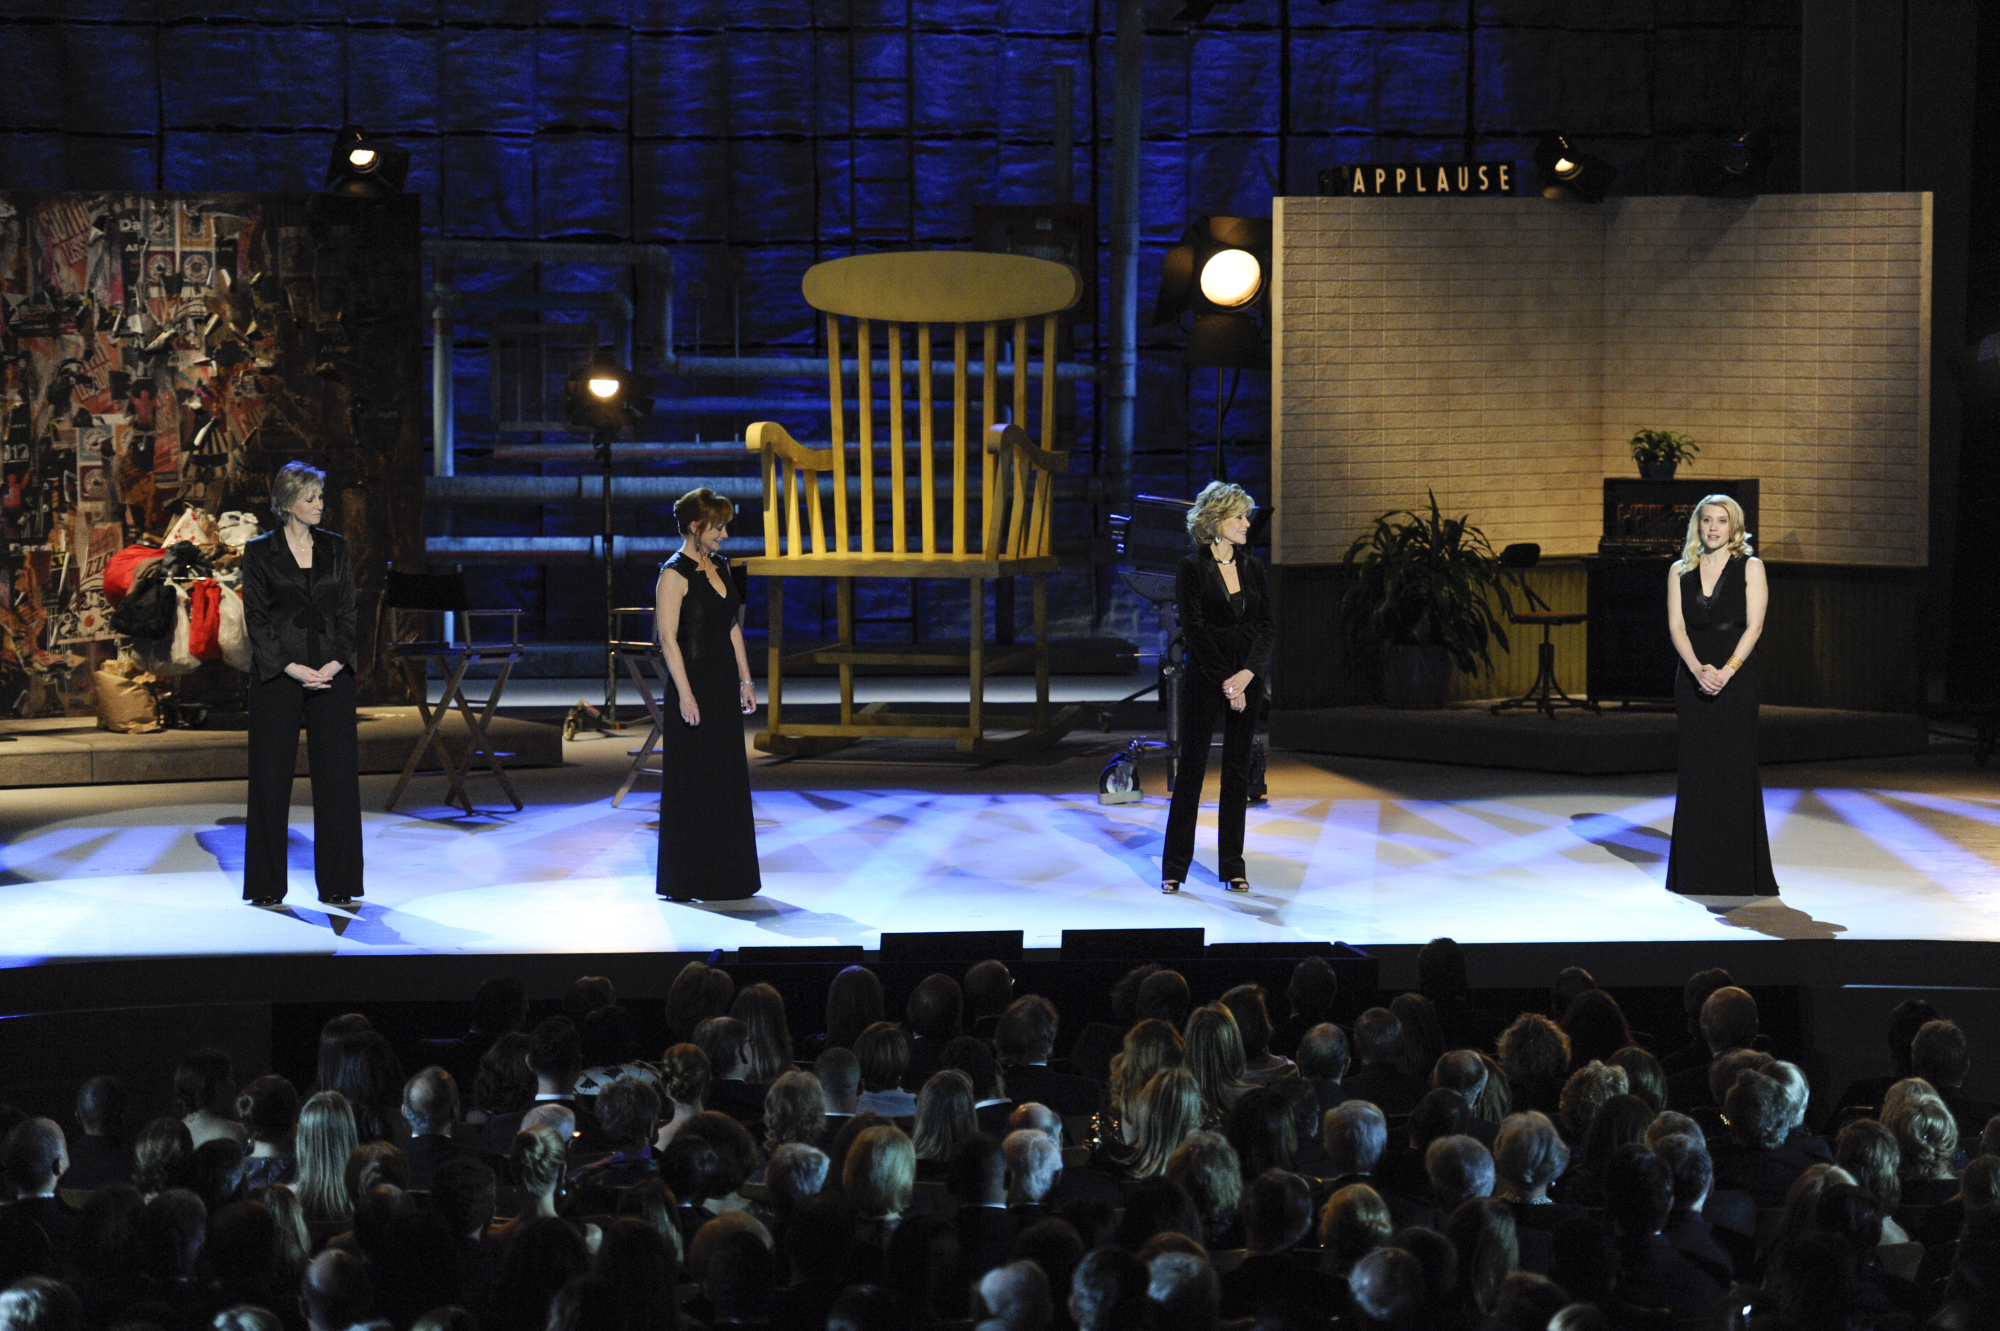 Jane Lynch, Reba McEntire, Jane Fonda, and Kate McKinnon Share the Stage